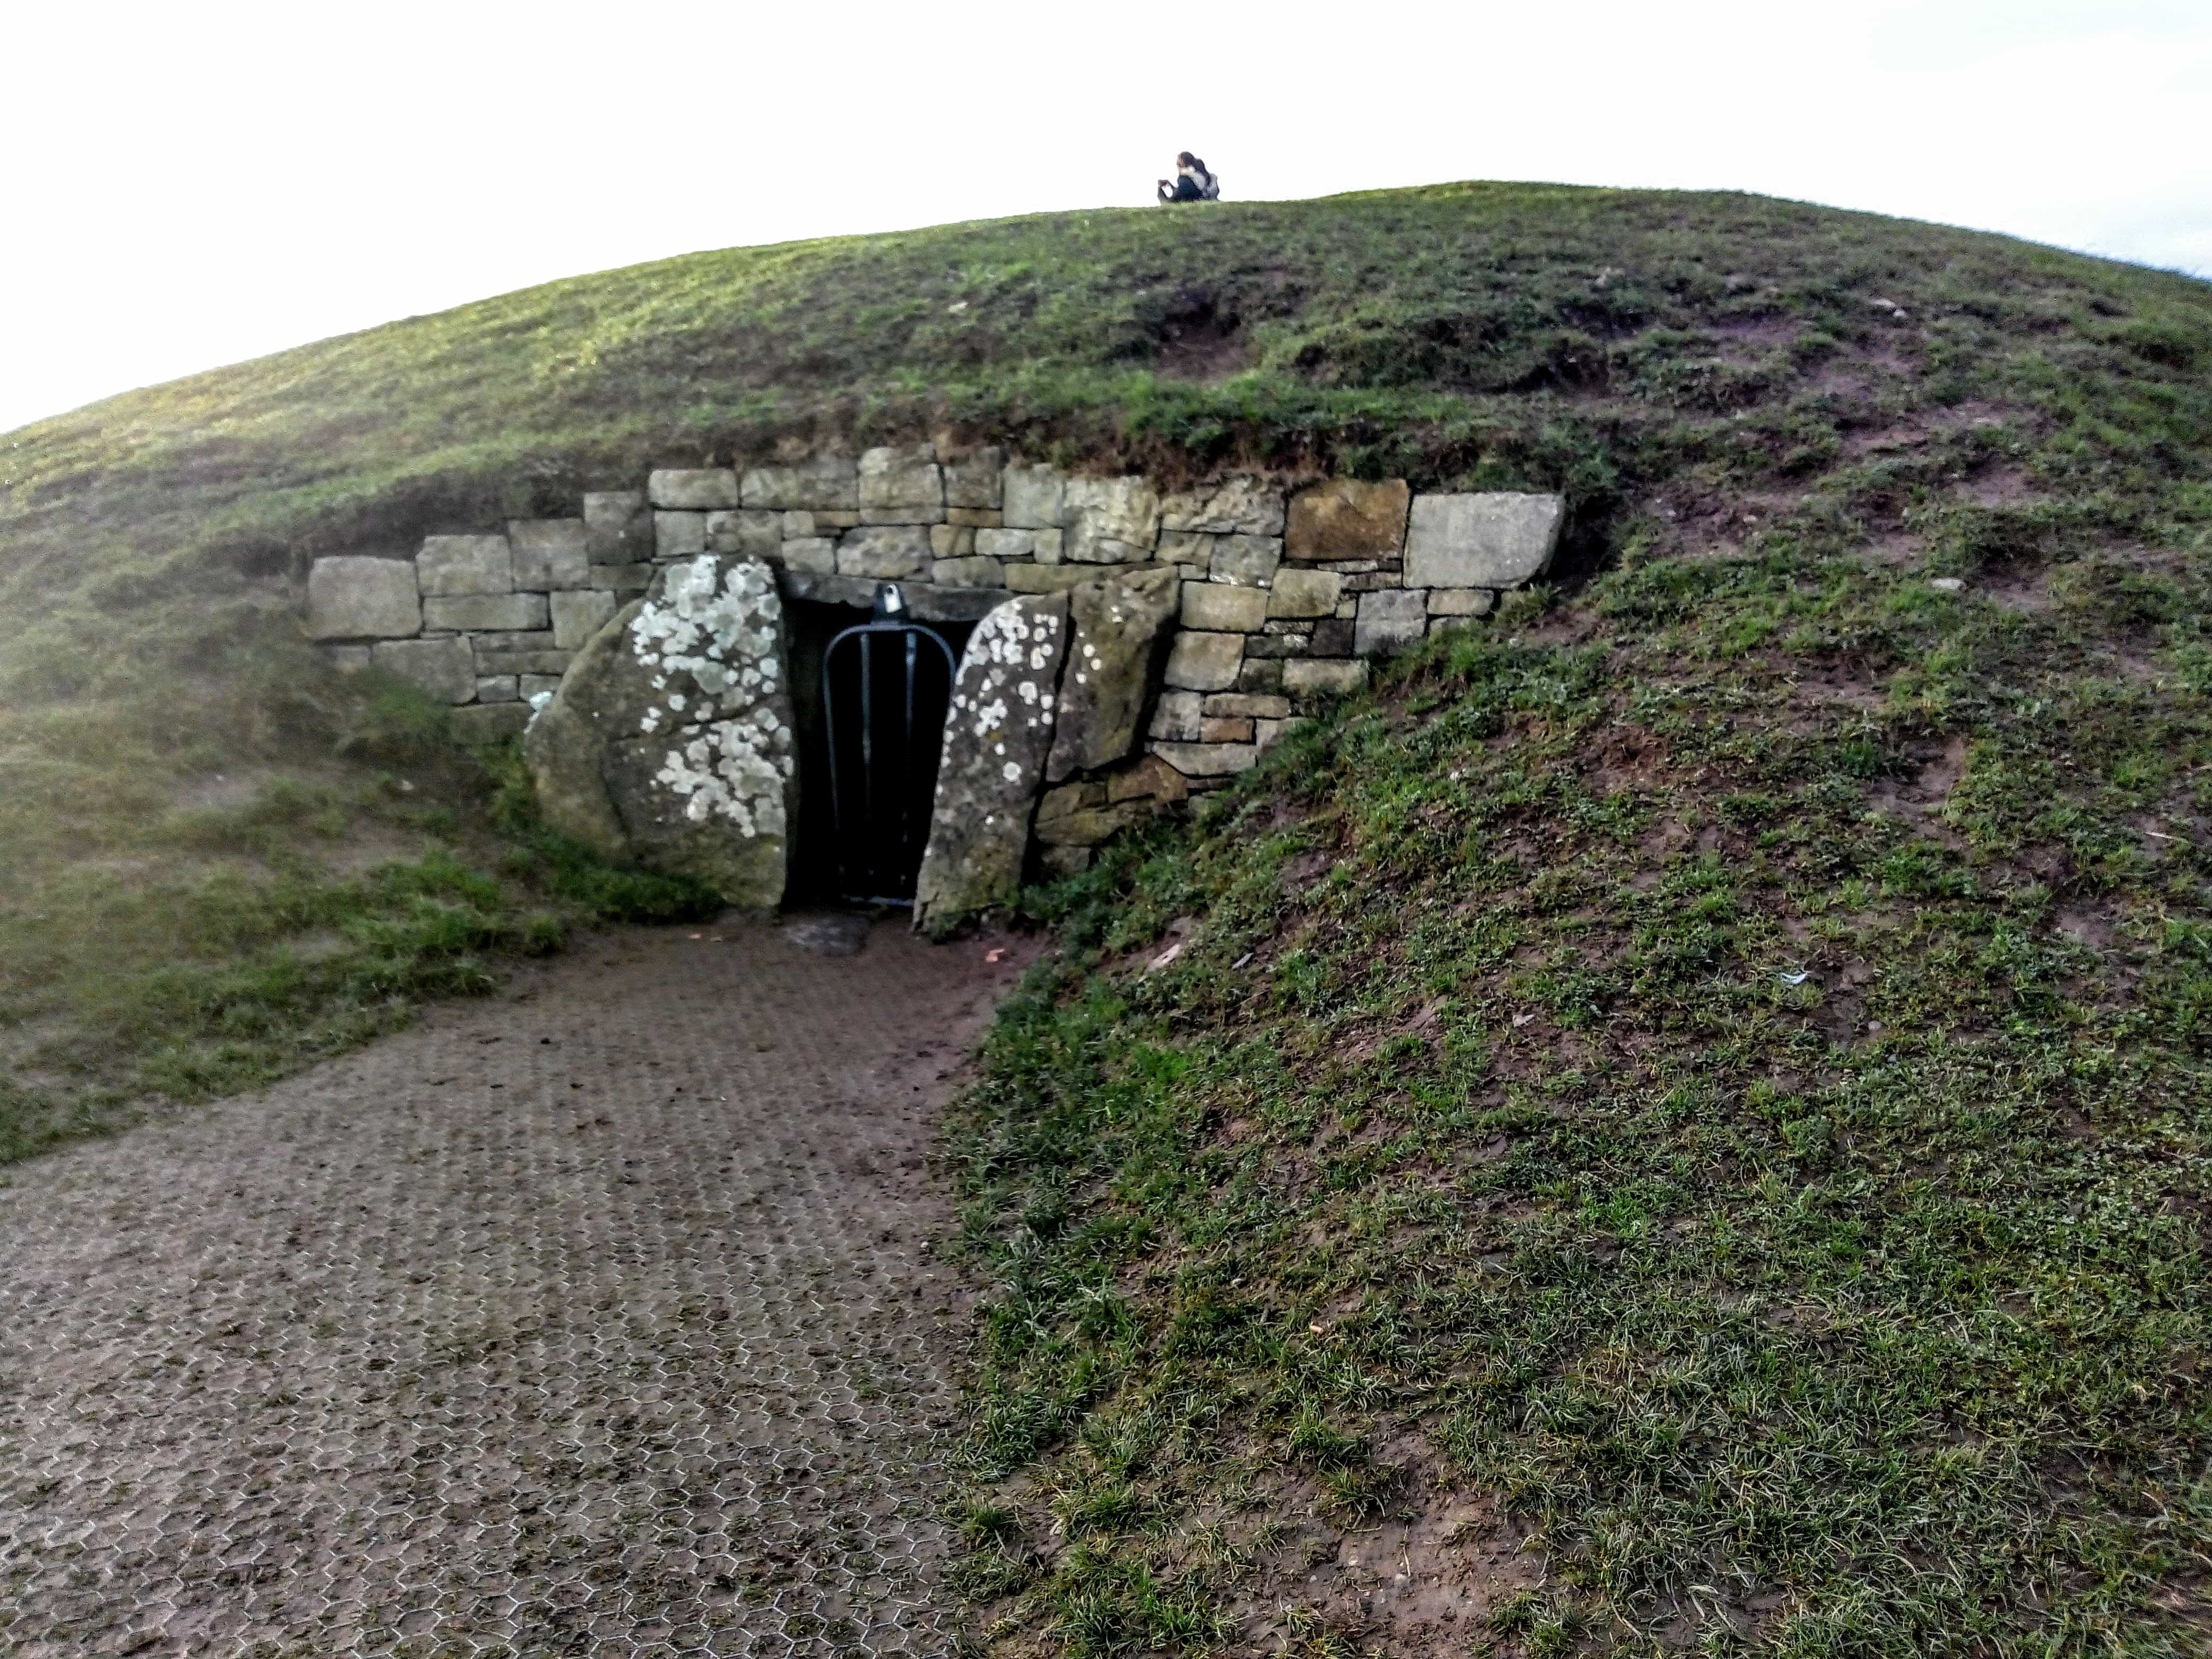 4 Fascinating Historical sites - places to see in Ireland near Dublin